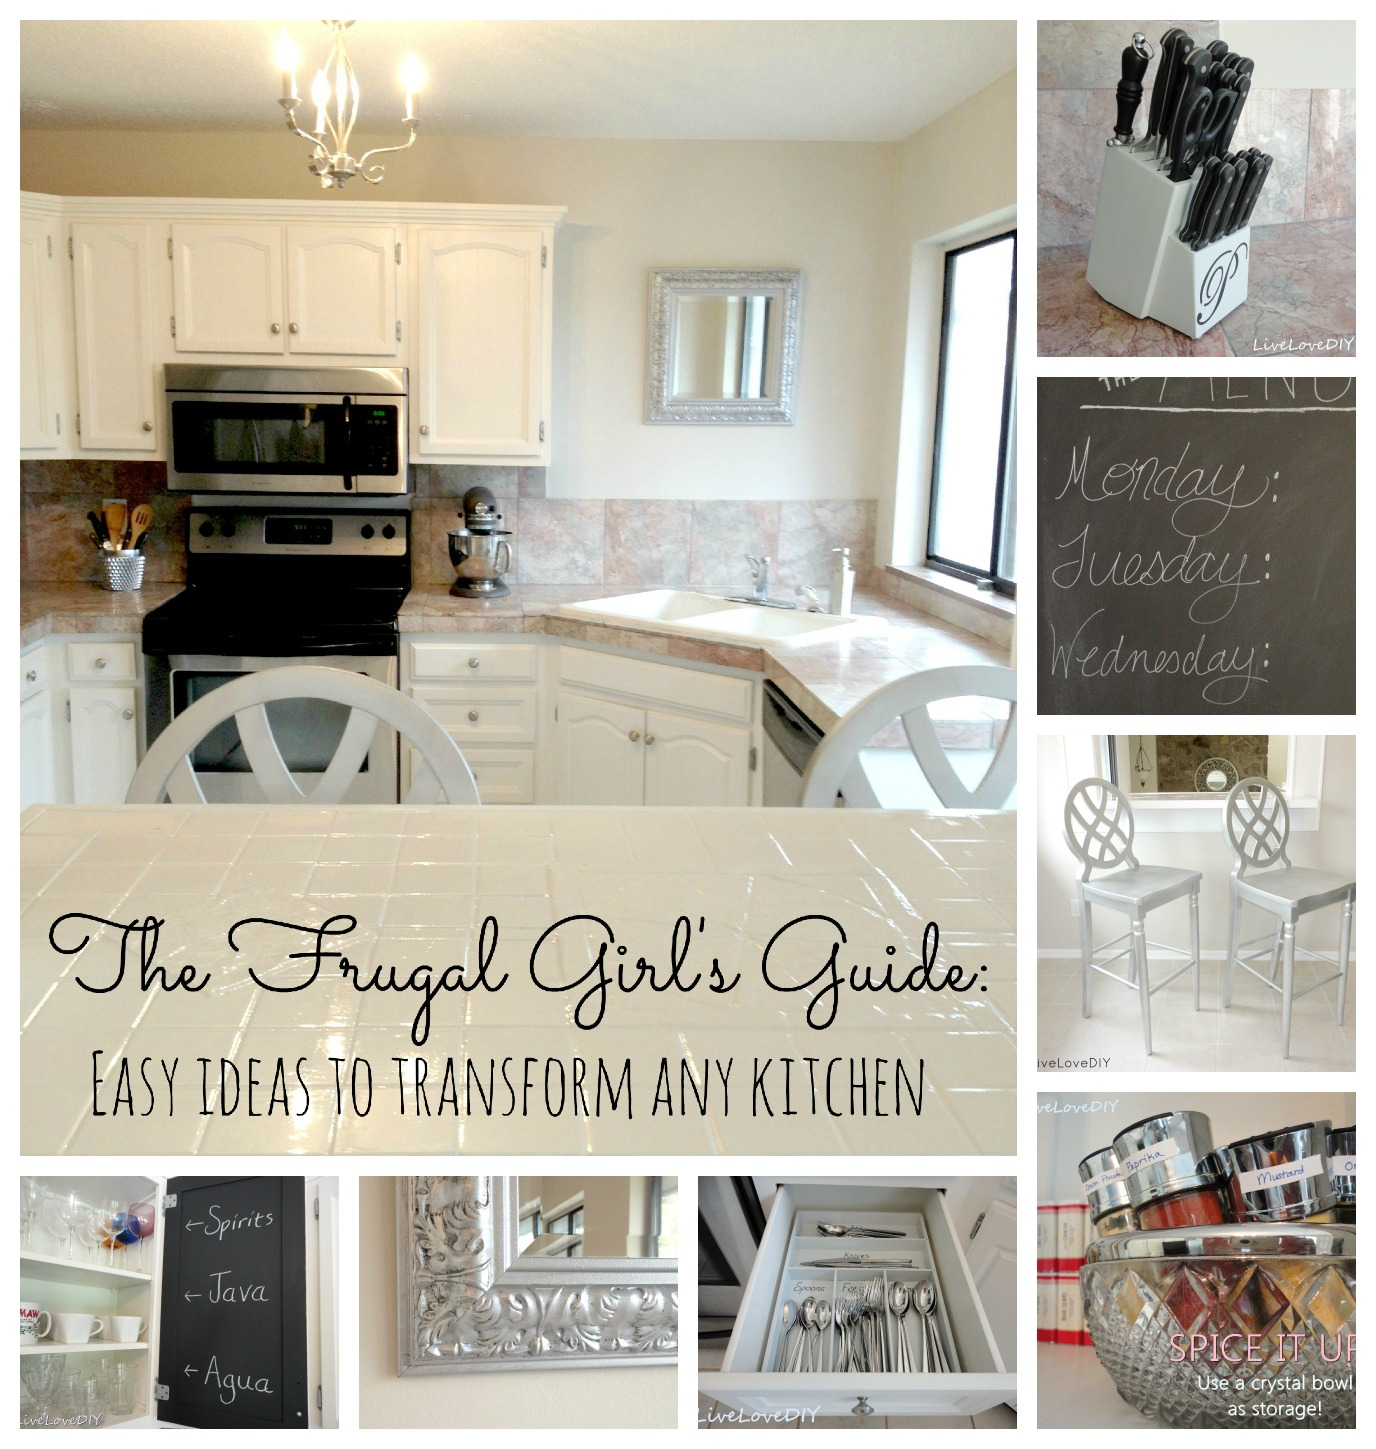 livelovediy: creative ways to update your kitchen using paint